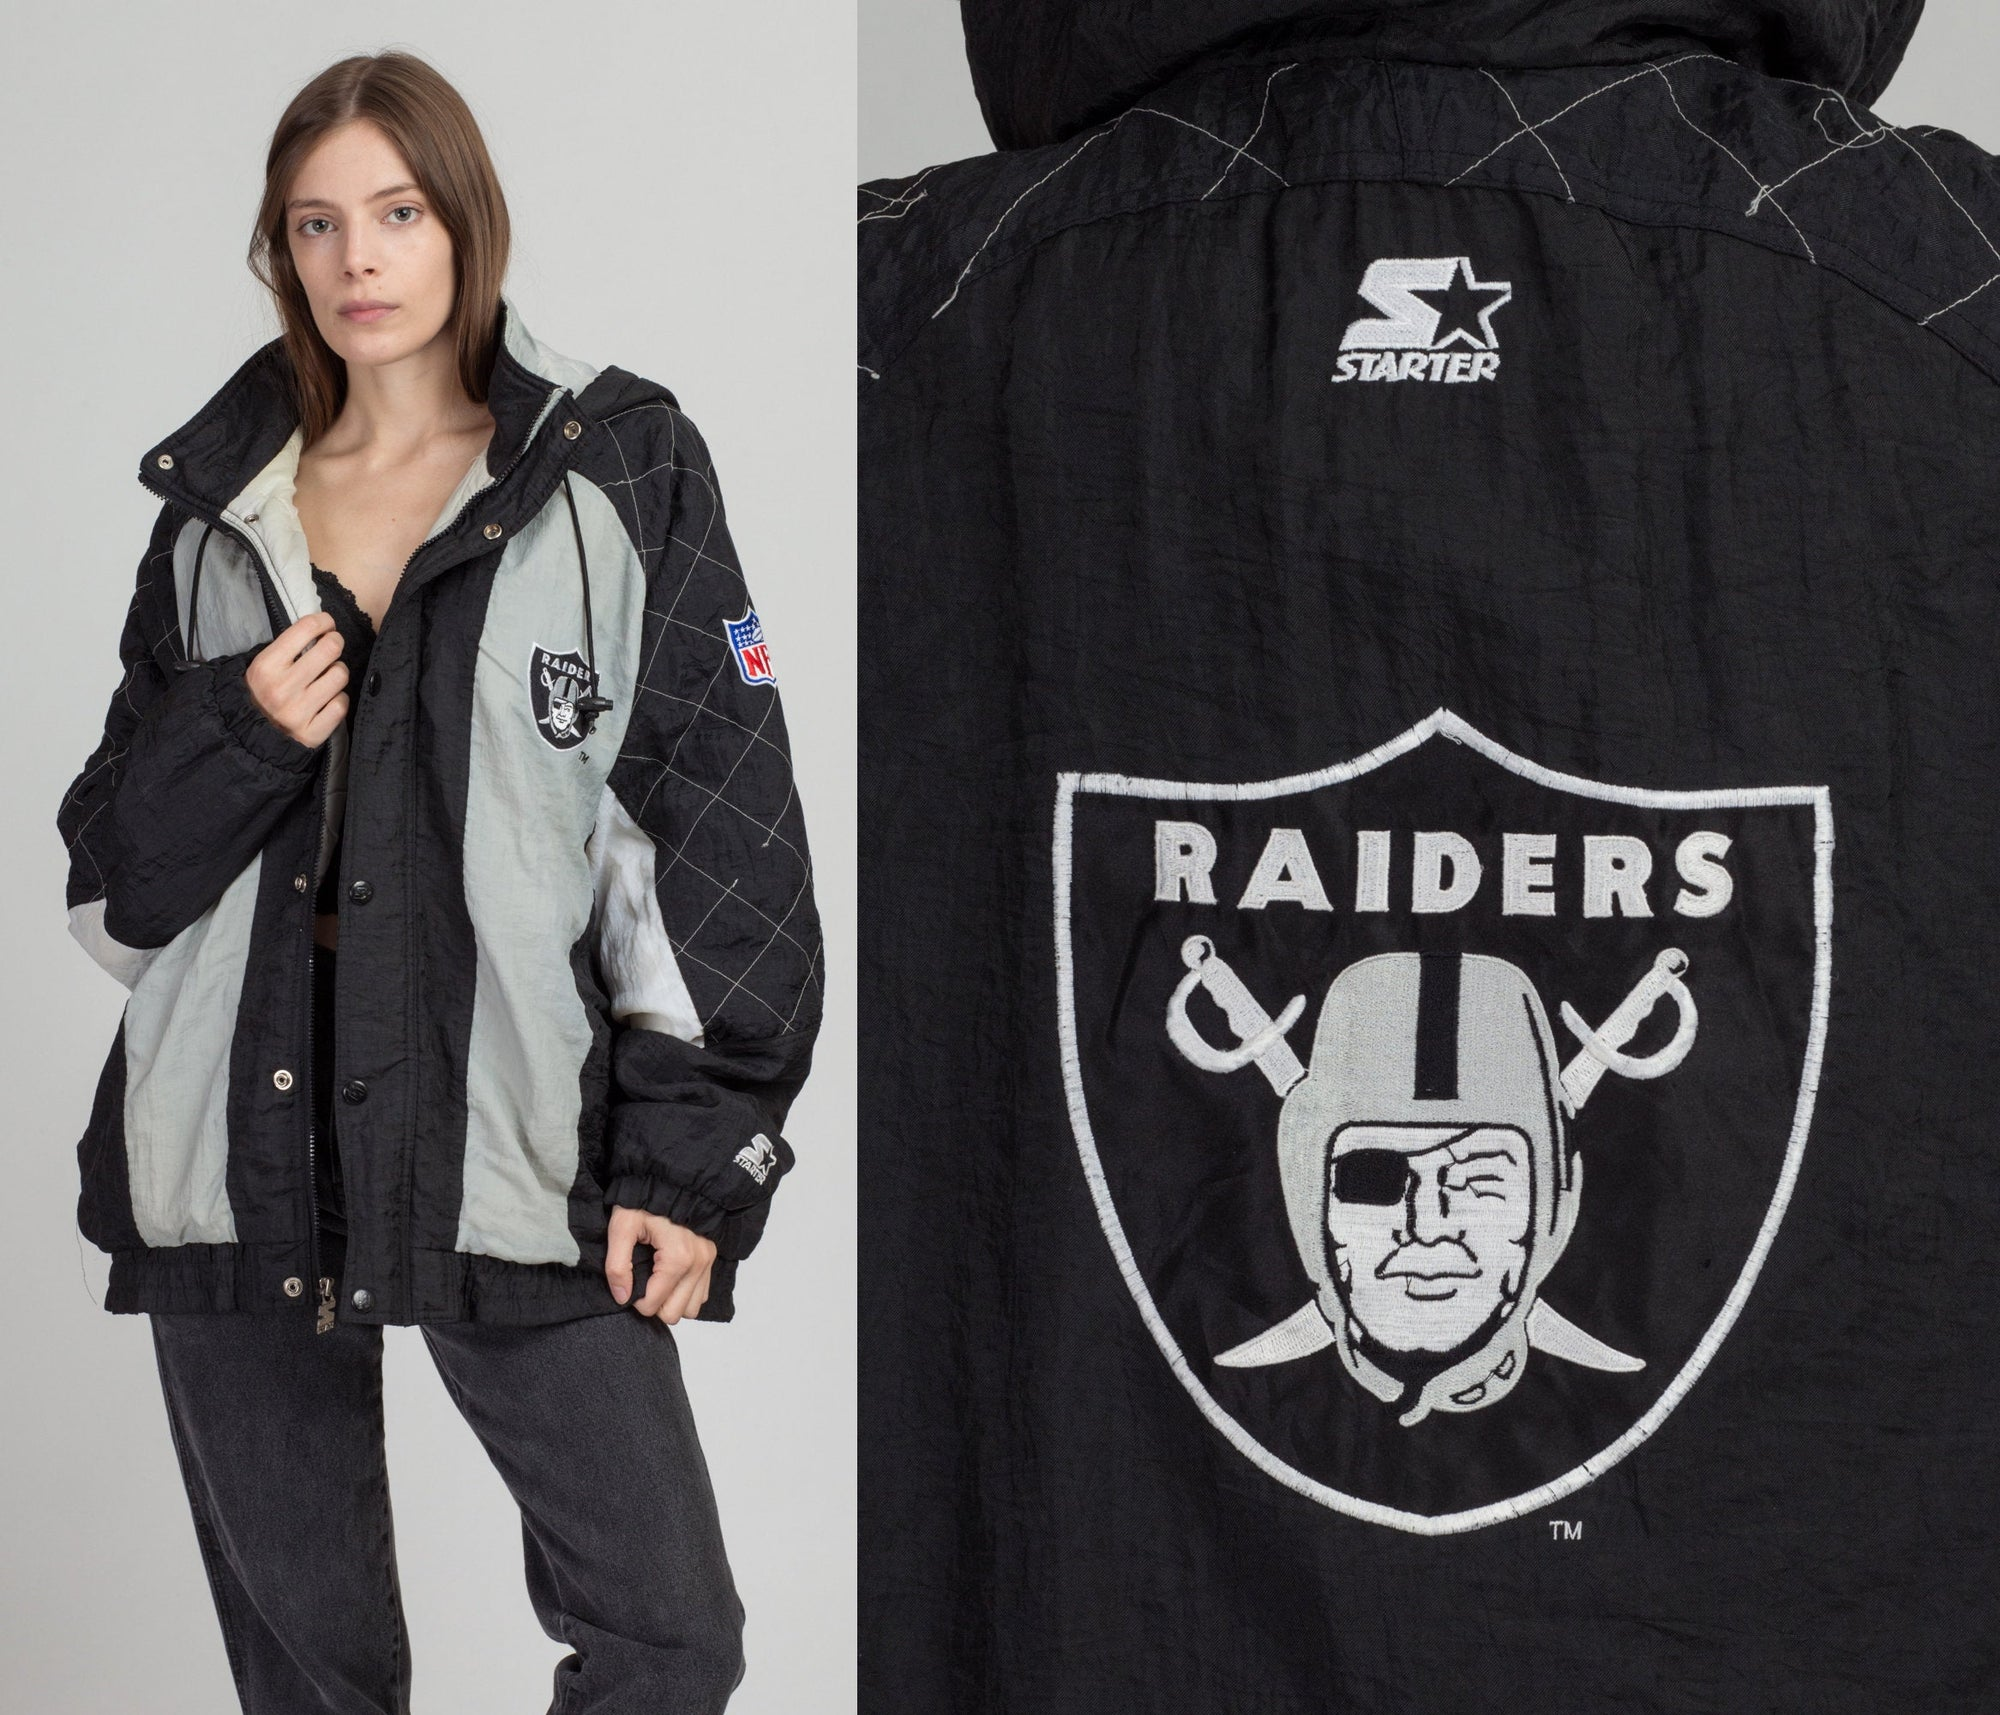 Vintage Raiders Starter Jacket - Men's XL | 90s NFL Football Puffy Hooded Winter Coat